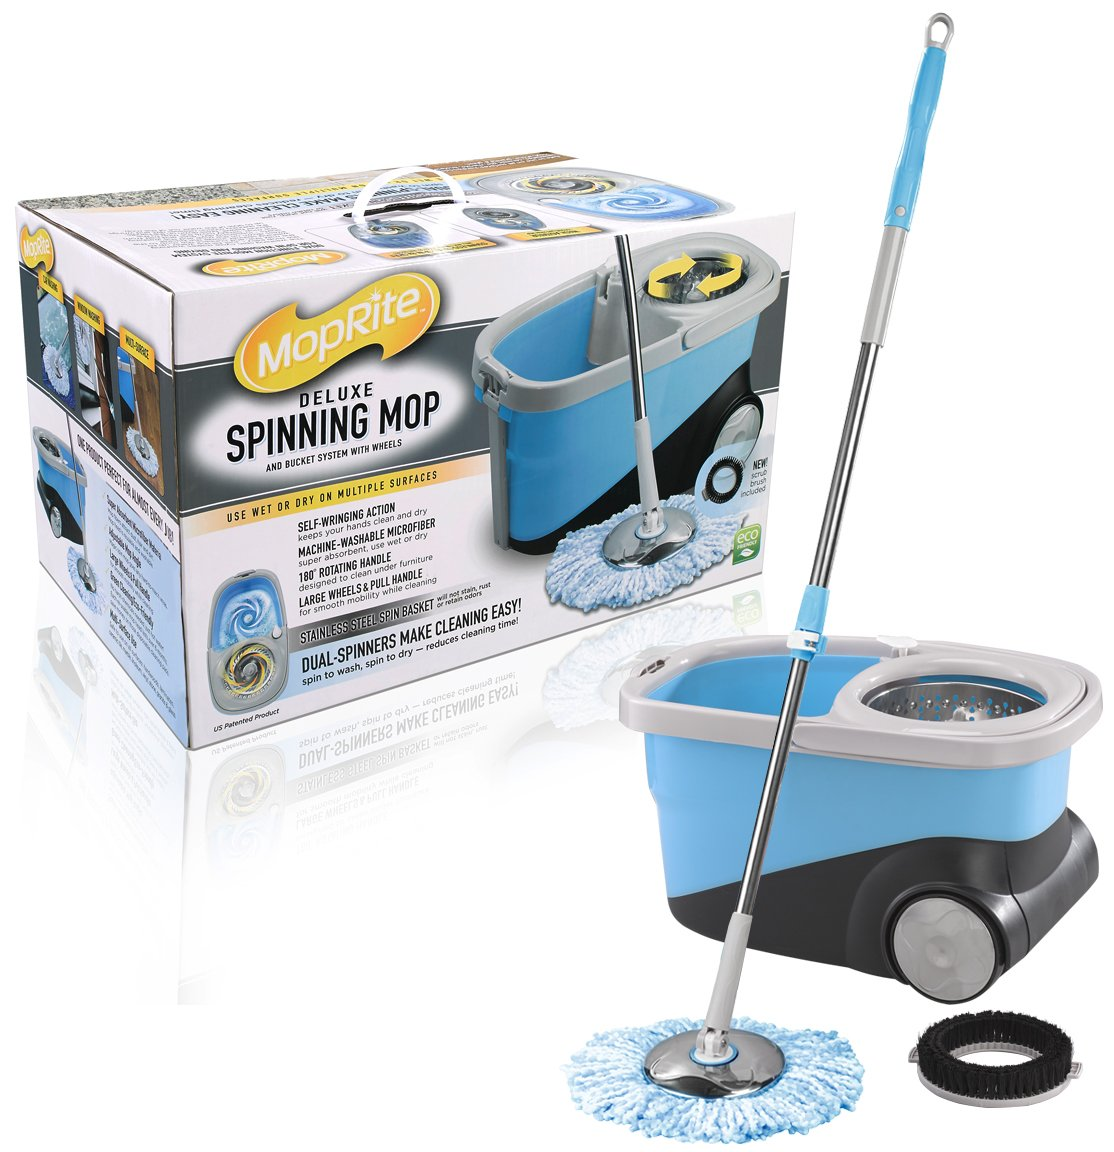 moprite-spin-mop-6